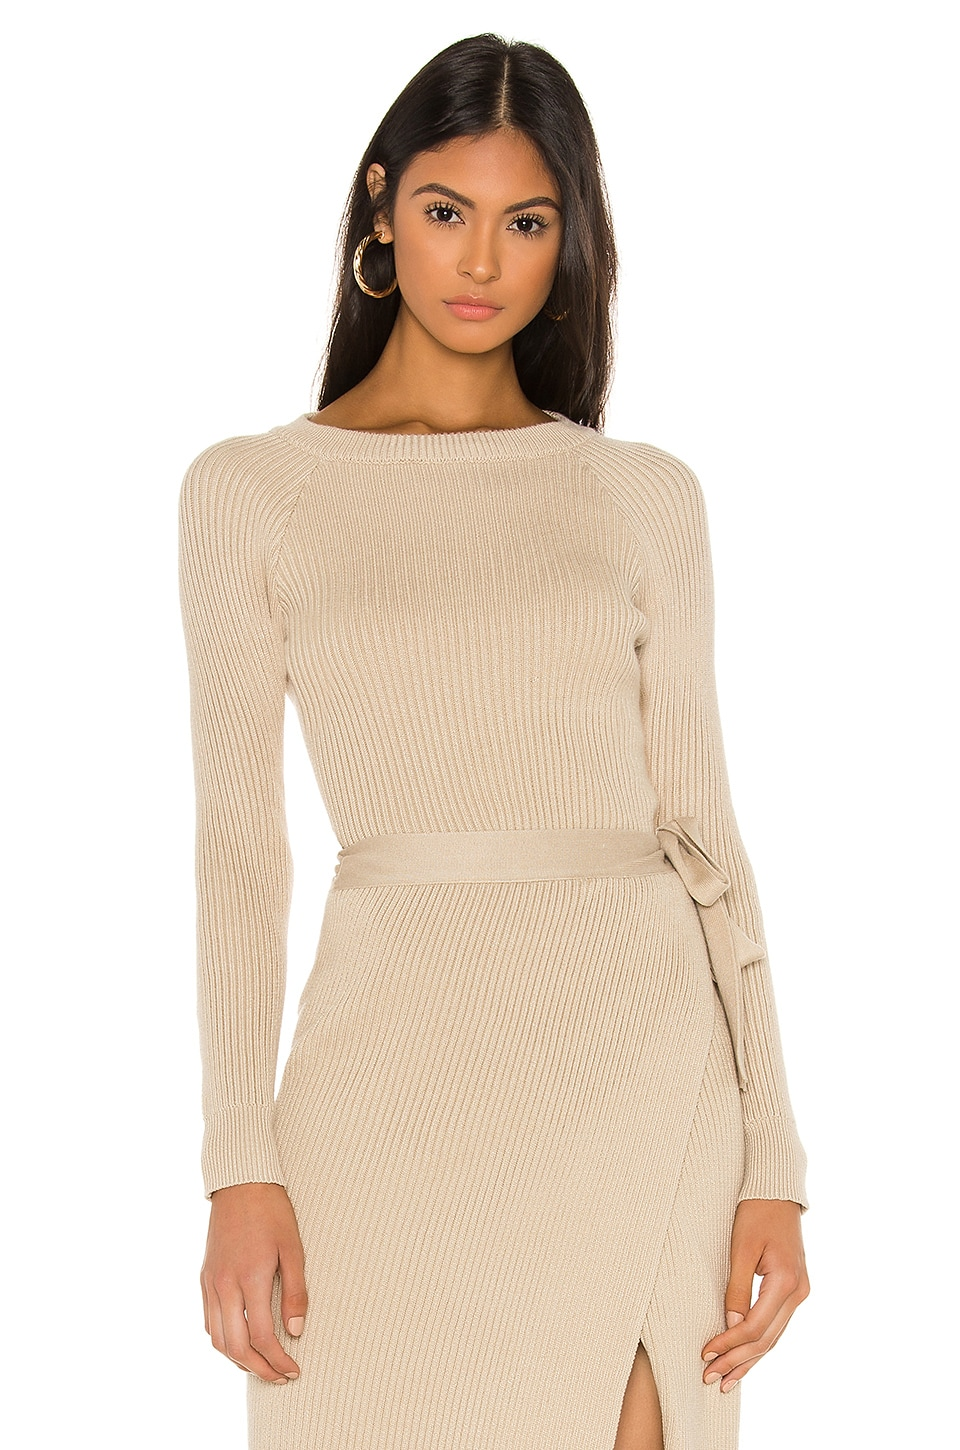 Line & Dot Alysa Sweater Set Top in Taupe